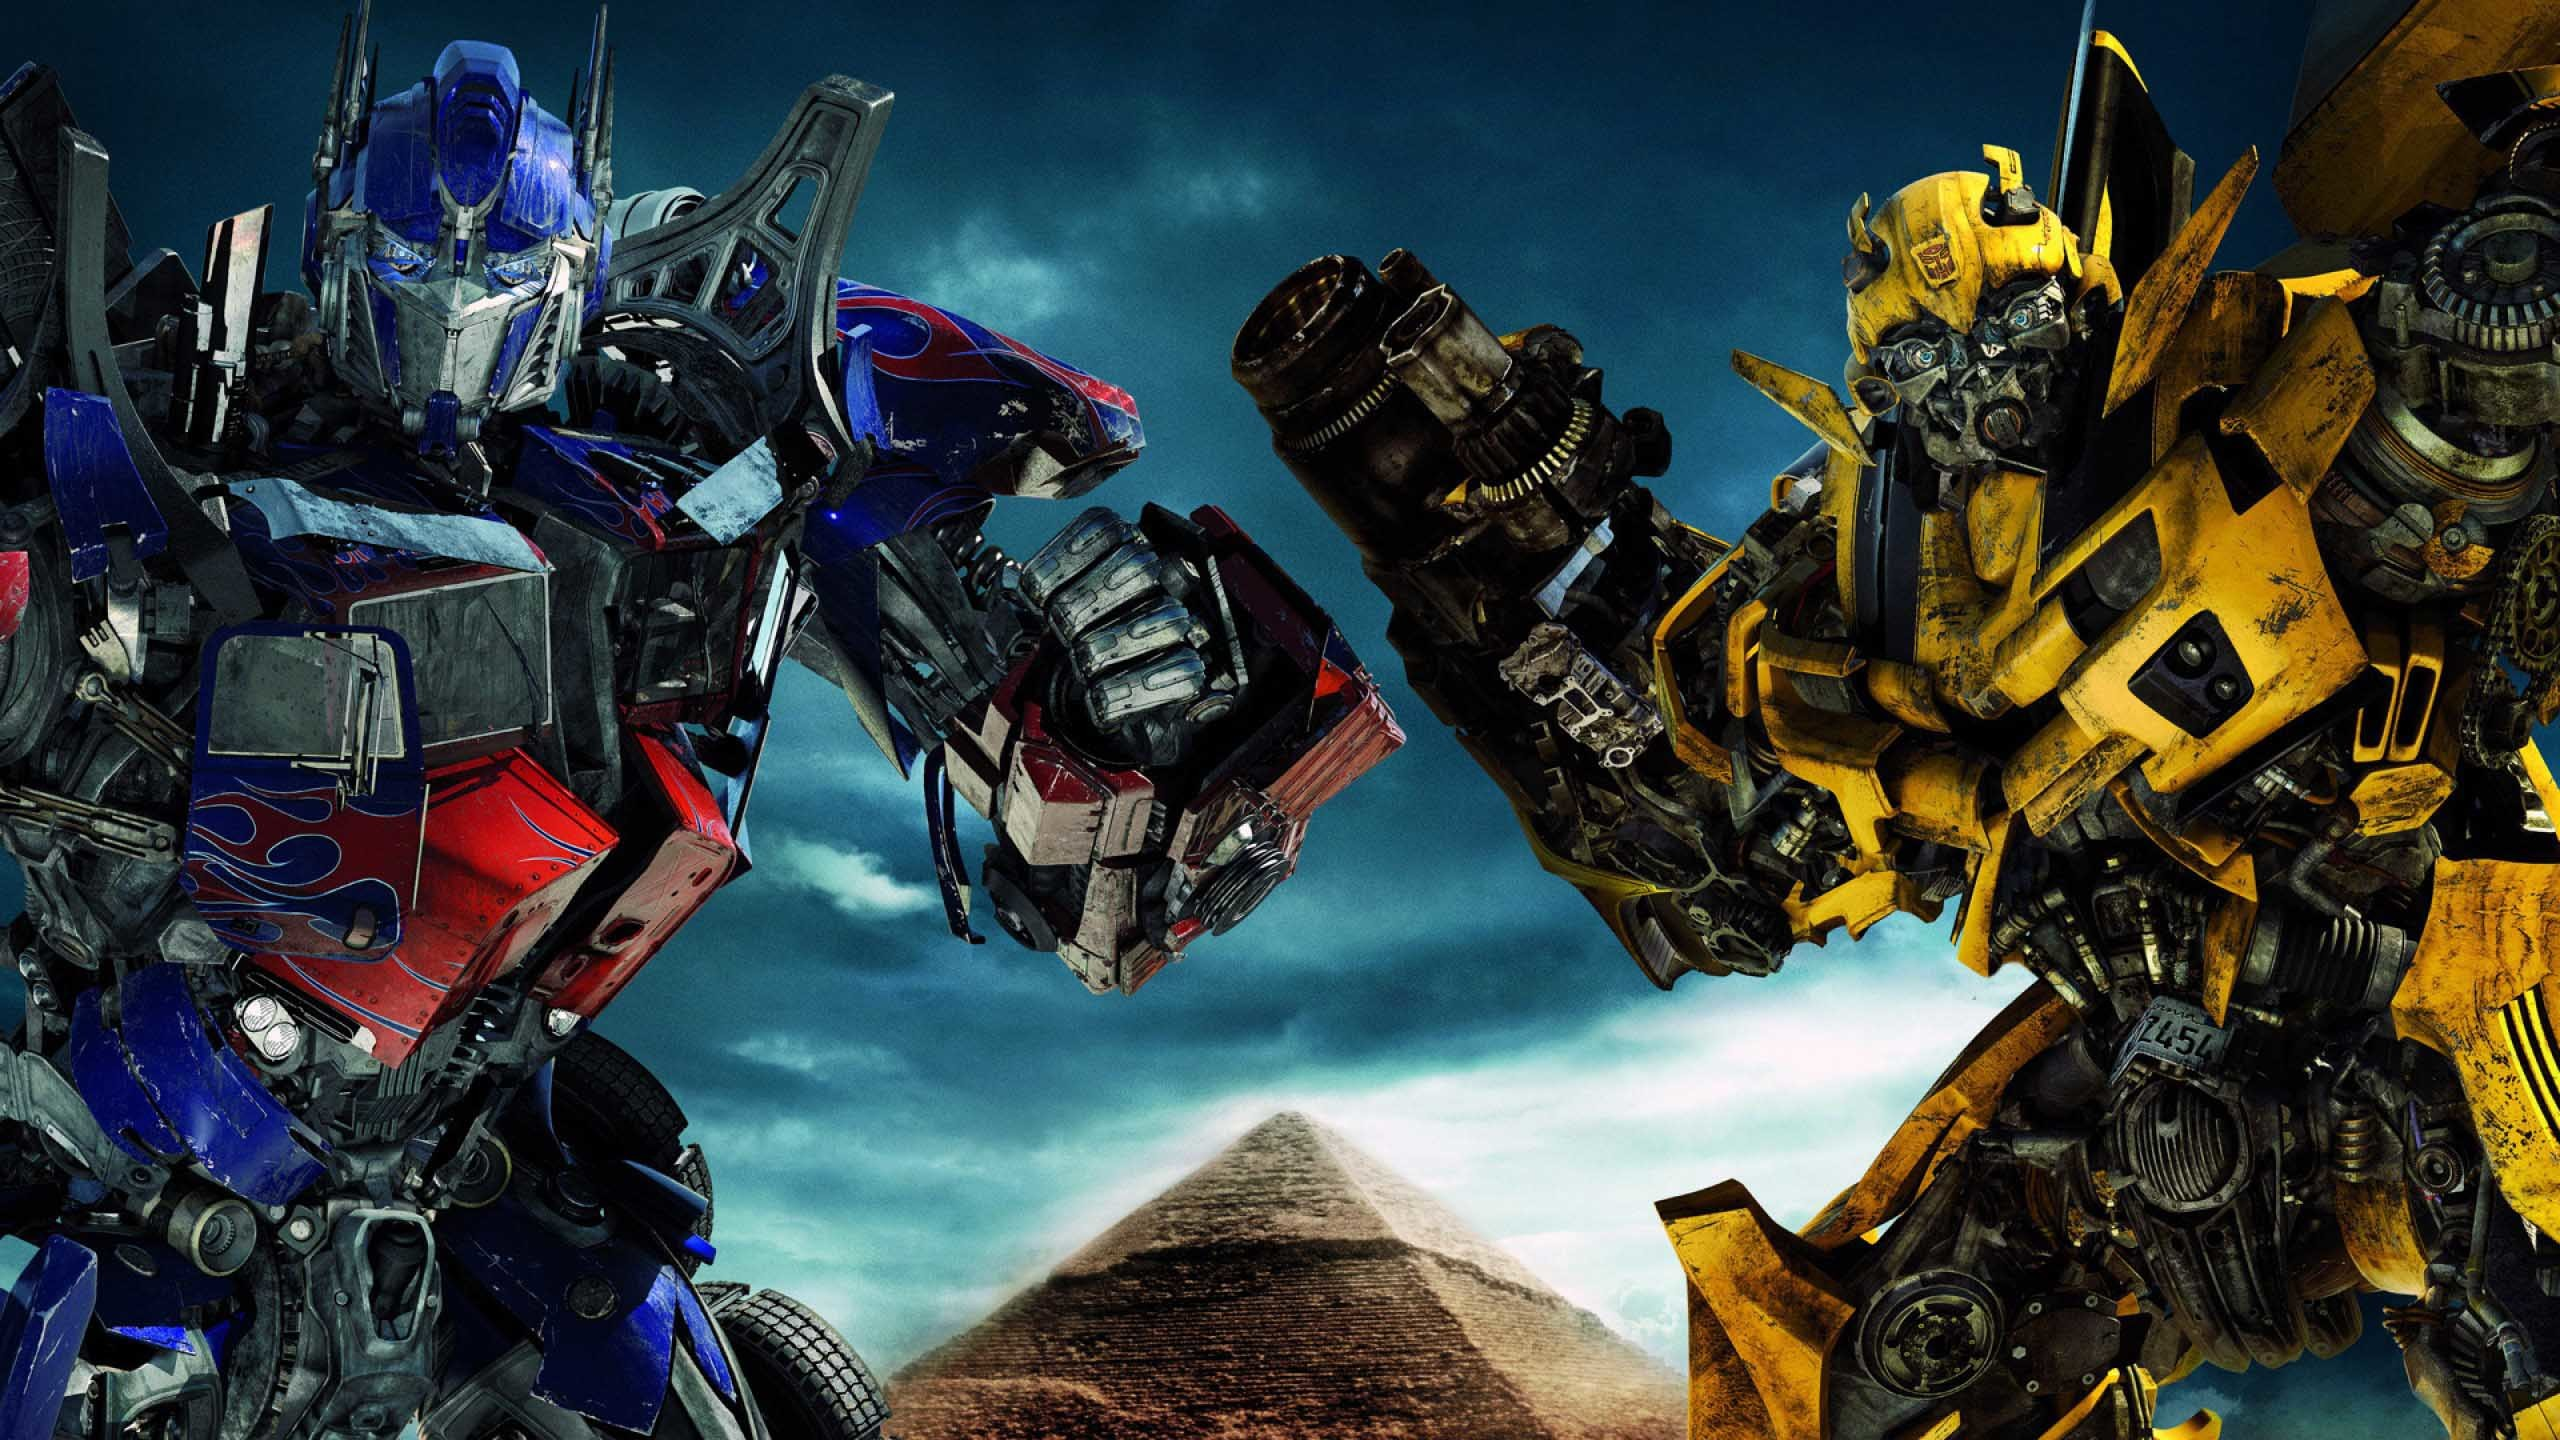 Res: 2560x1440, Transformers Wallpapers HD | Wallpapers, Backgrounds, Images, Art ..